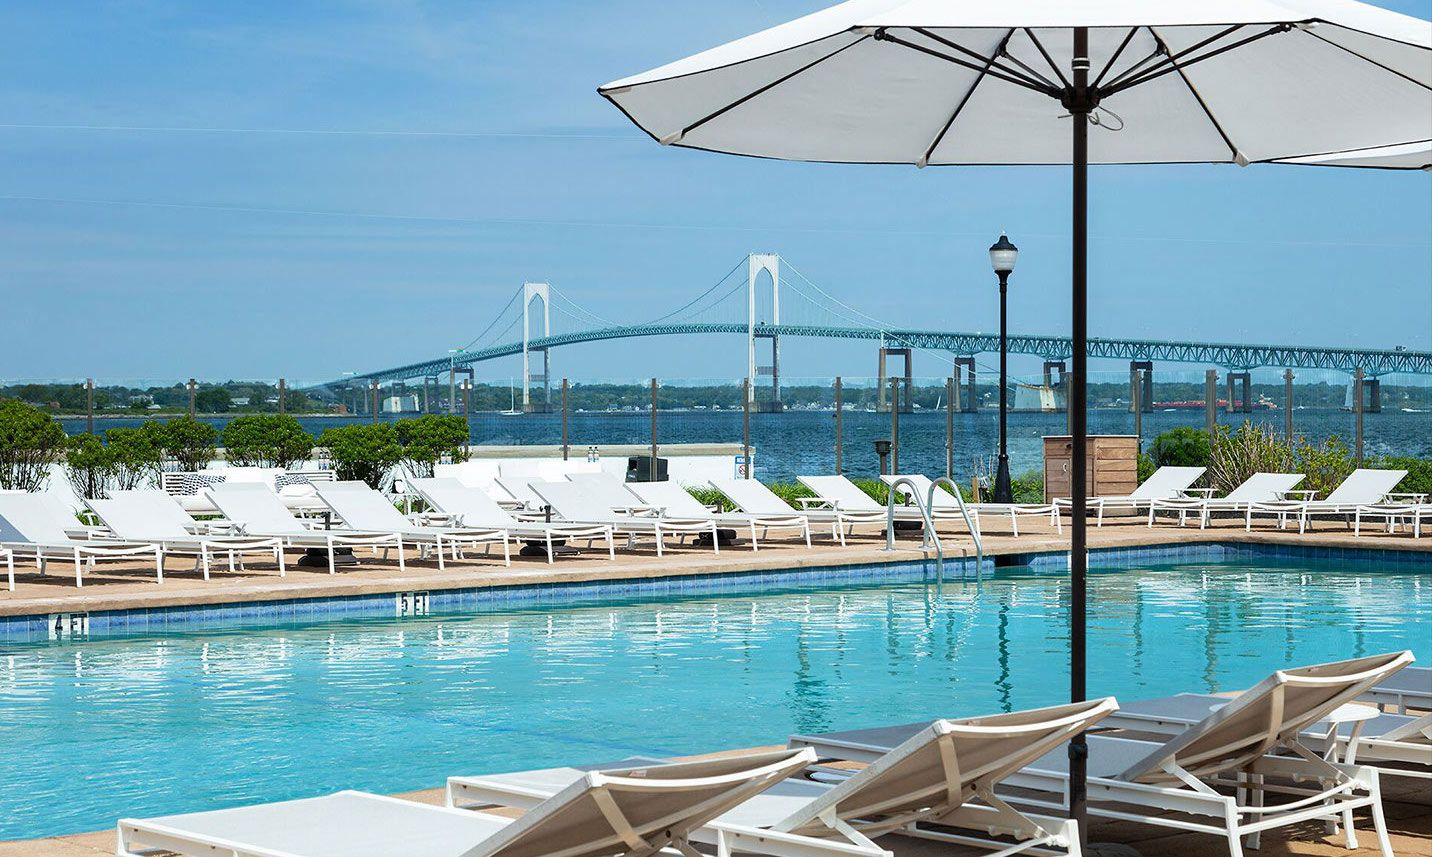 Pool at Pineapple Club in Newport with view of the bridge